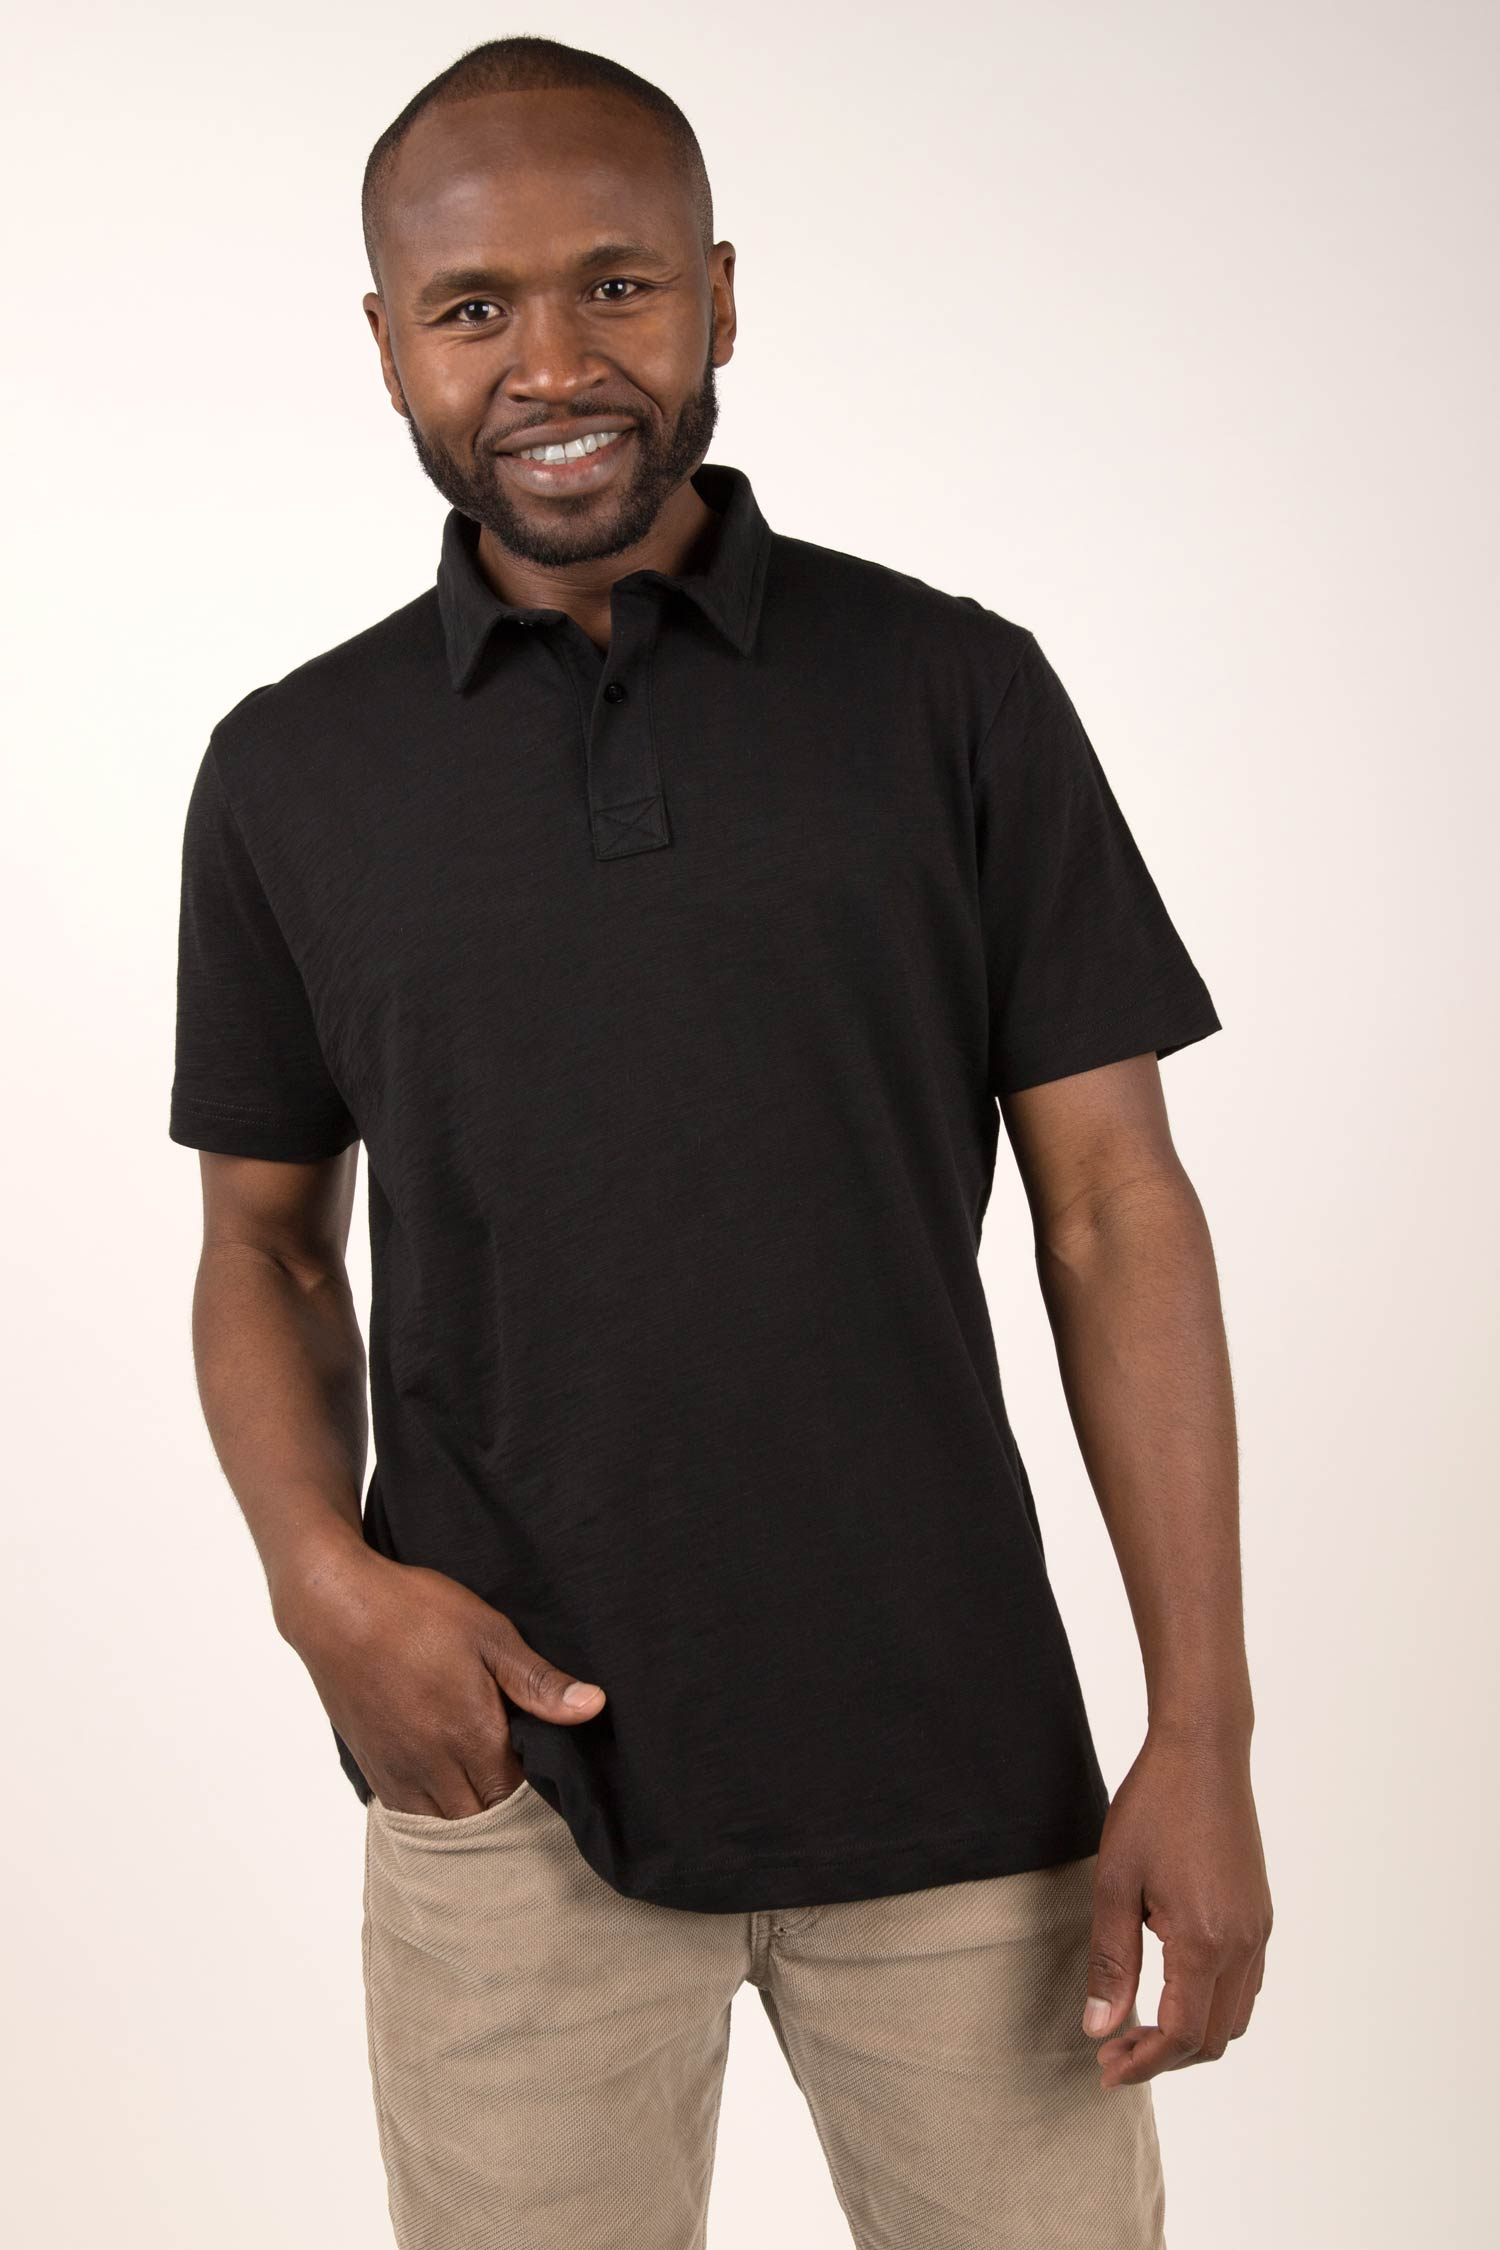 Black male model smiling at camera wearing a Black alpaca wool sub polo shirt. He has one hand in his pocket and is leaning on his right leg.